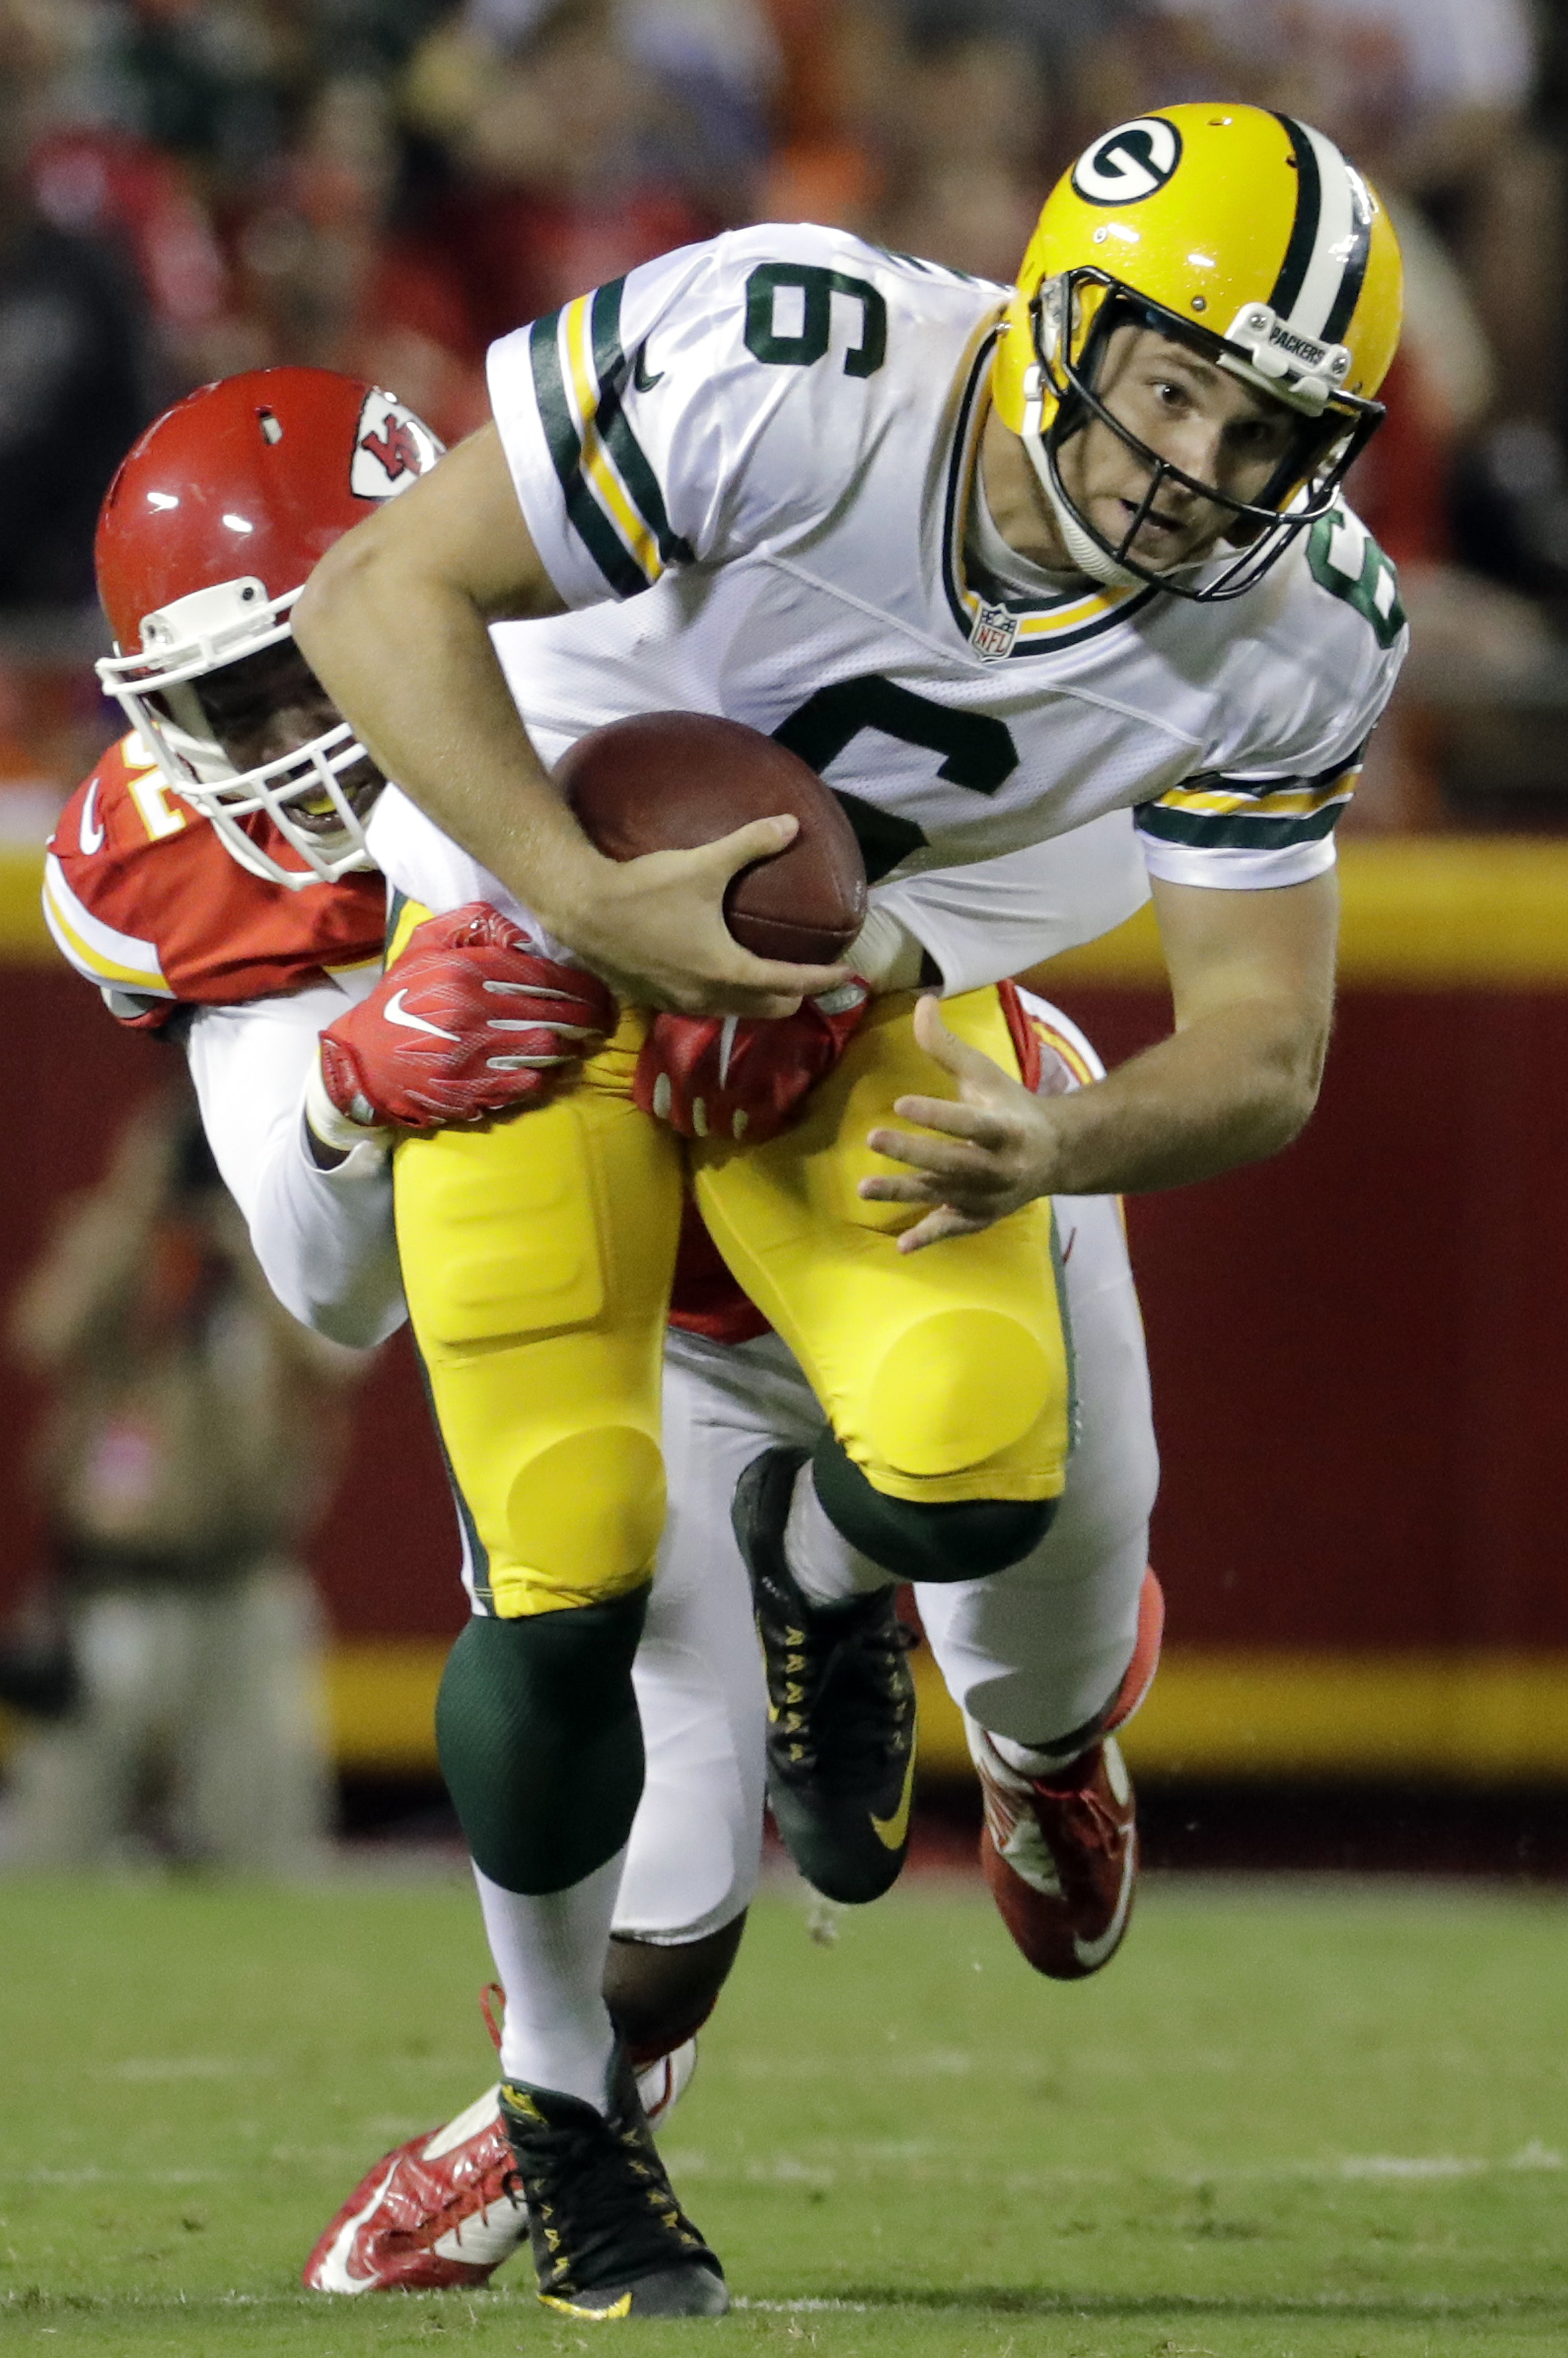 Kansas City Chiefs linebacker Dadi Nicolas, rear, sacks Green Bay Packers quarterback Joe Callahan (6) during the second half of an NFL preseason football game in Kansas City, Mo., Thursday, Sept. 1, 2016. Nicolas was injured on the play. (AP Photo/Charli